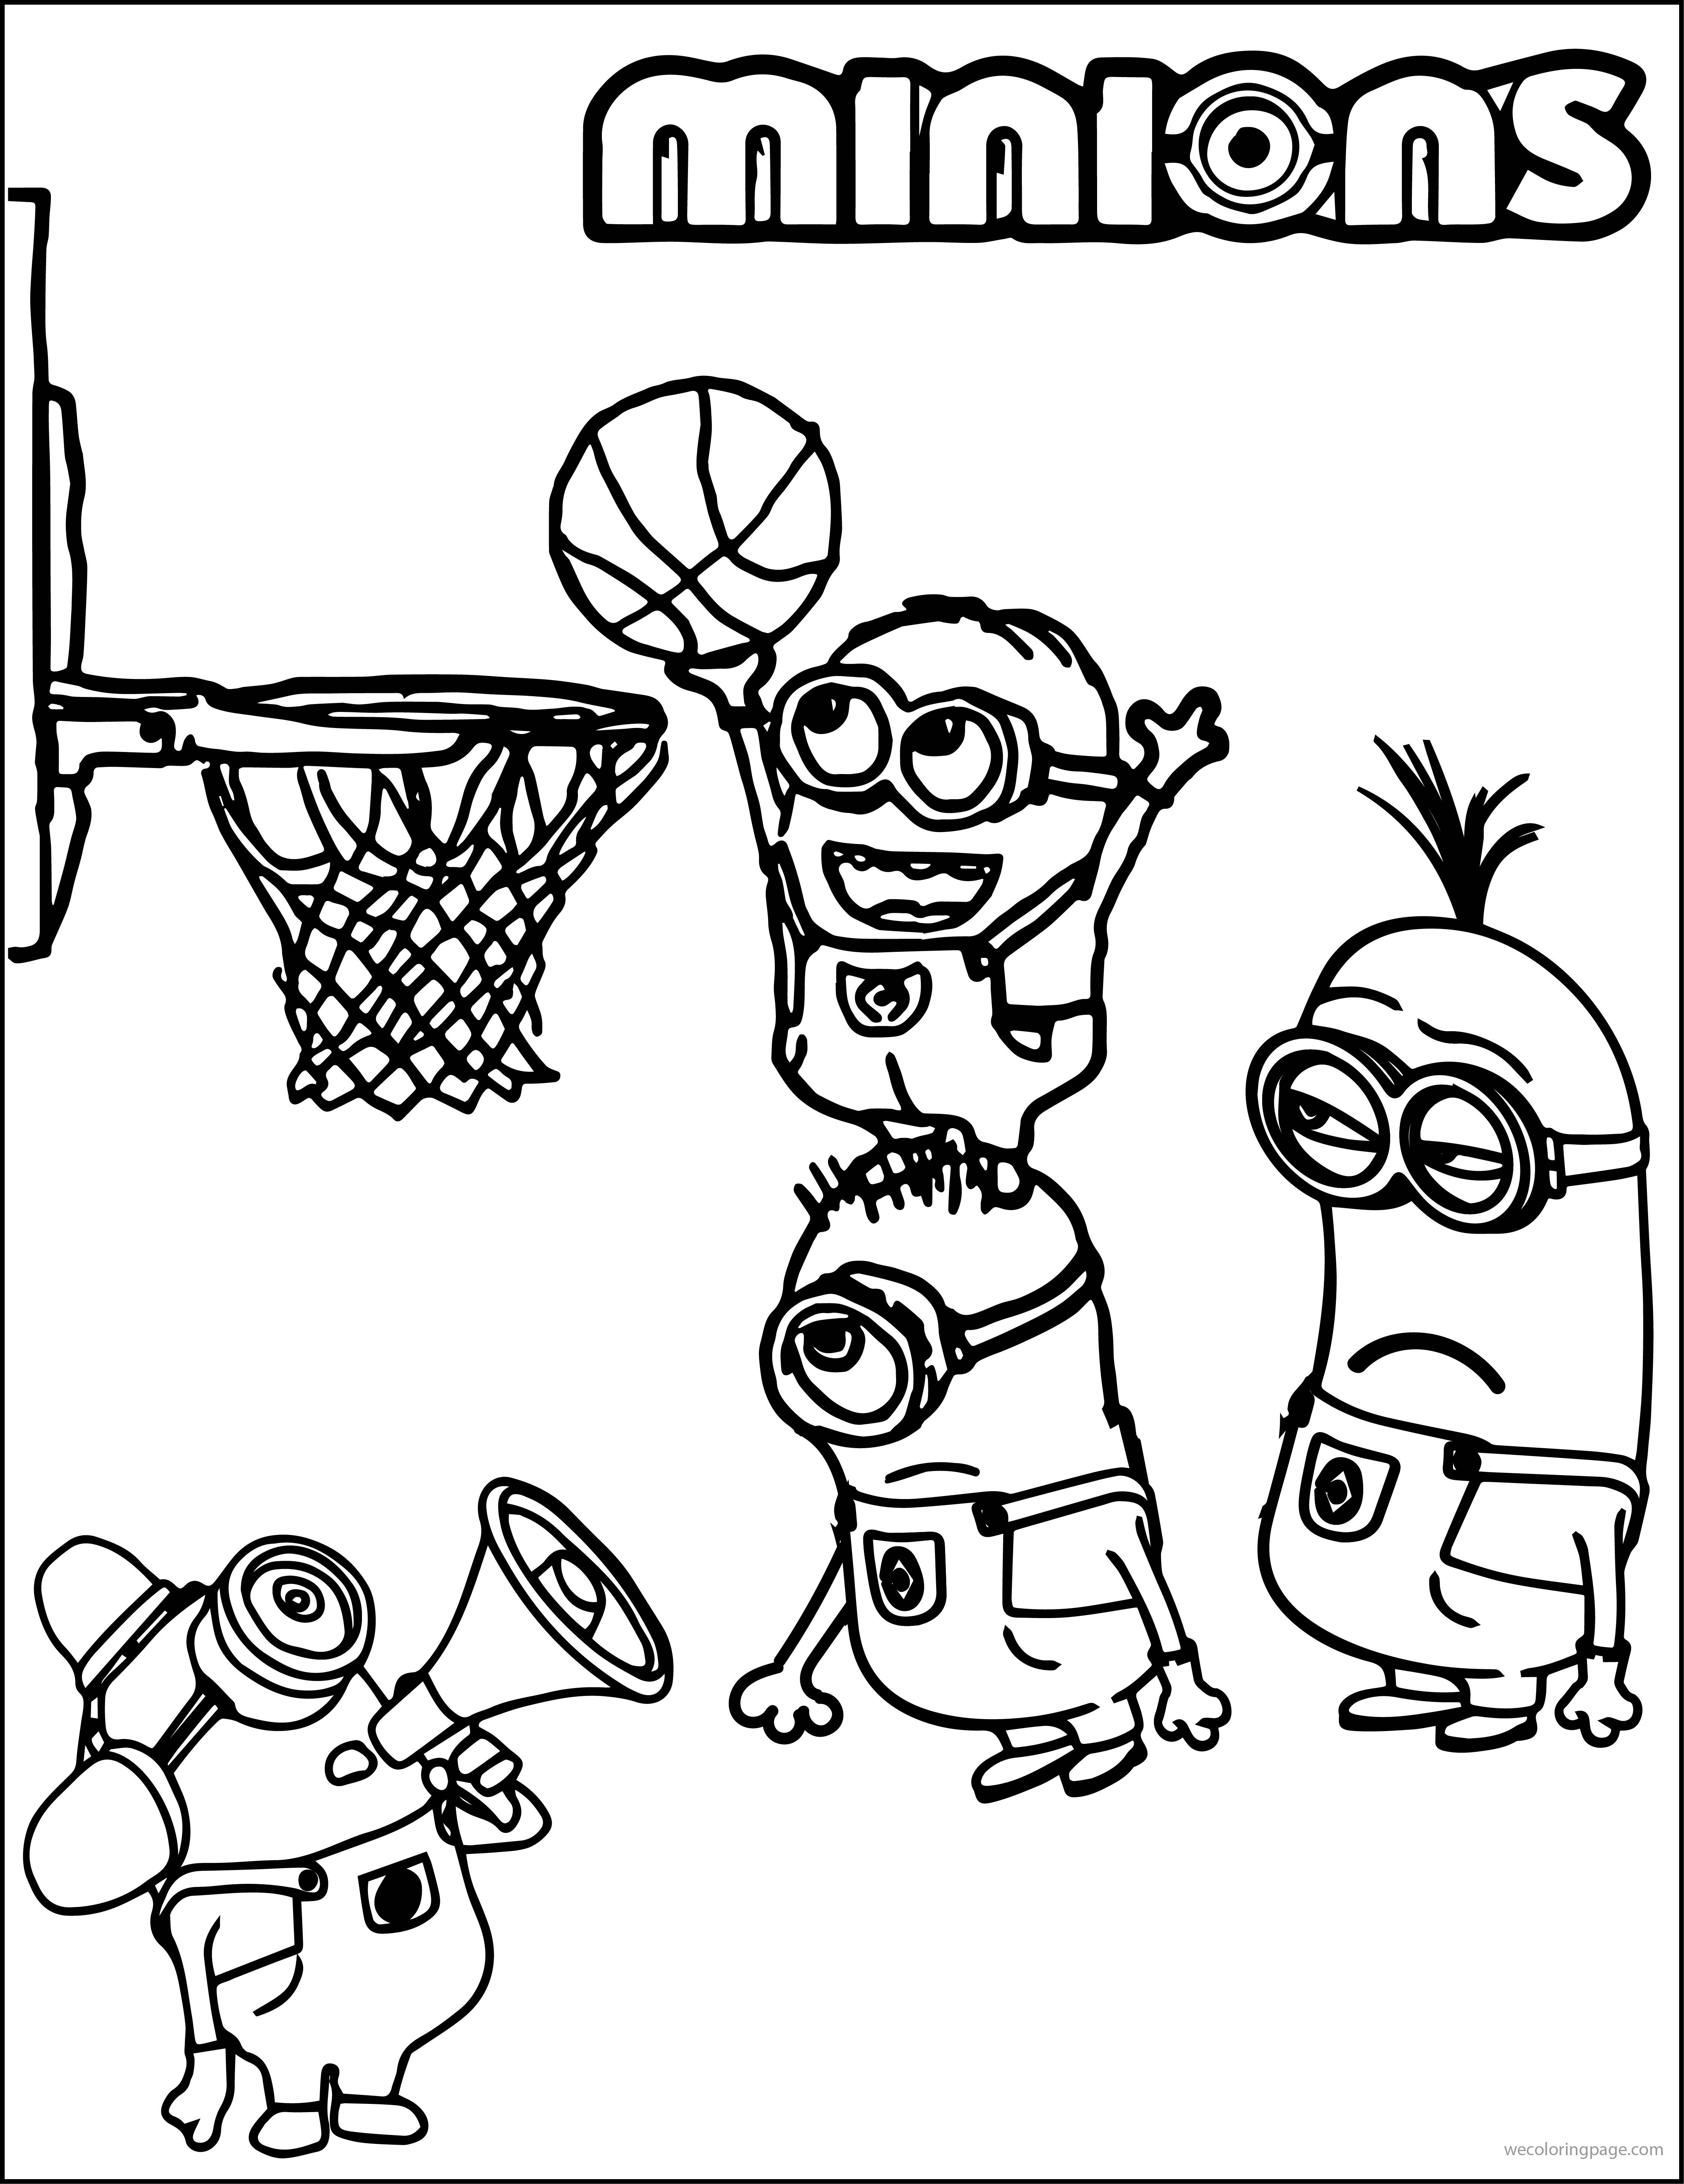 4499x5835 Minion Playing Basketball Coloring Pages Canvas Patterns, Clay